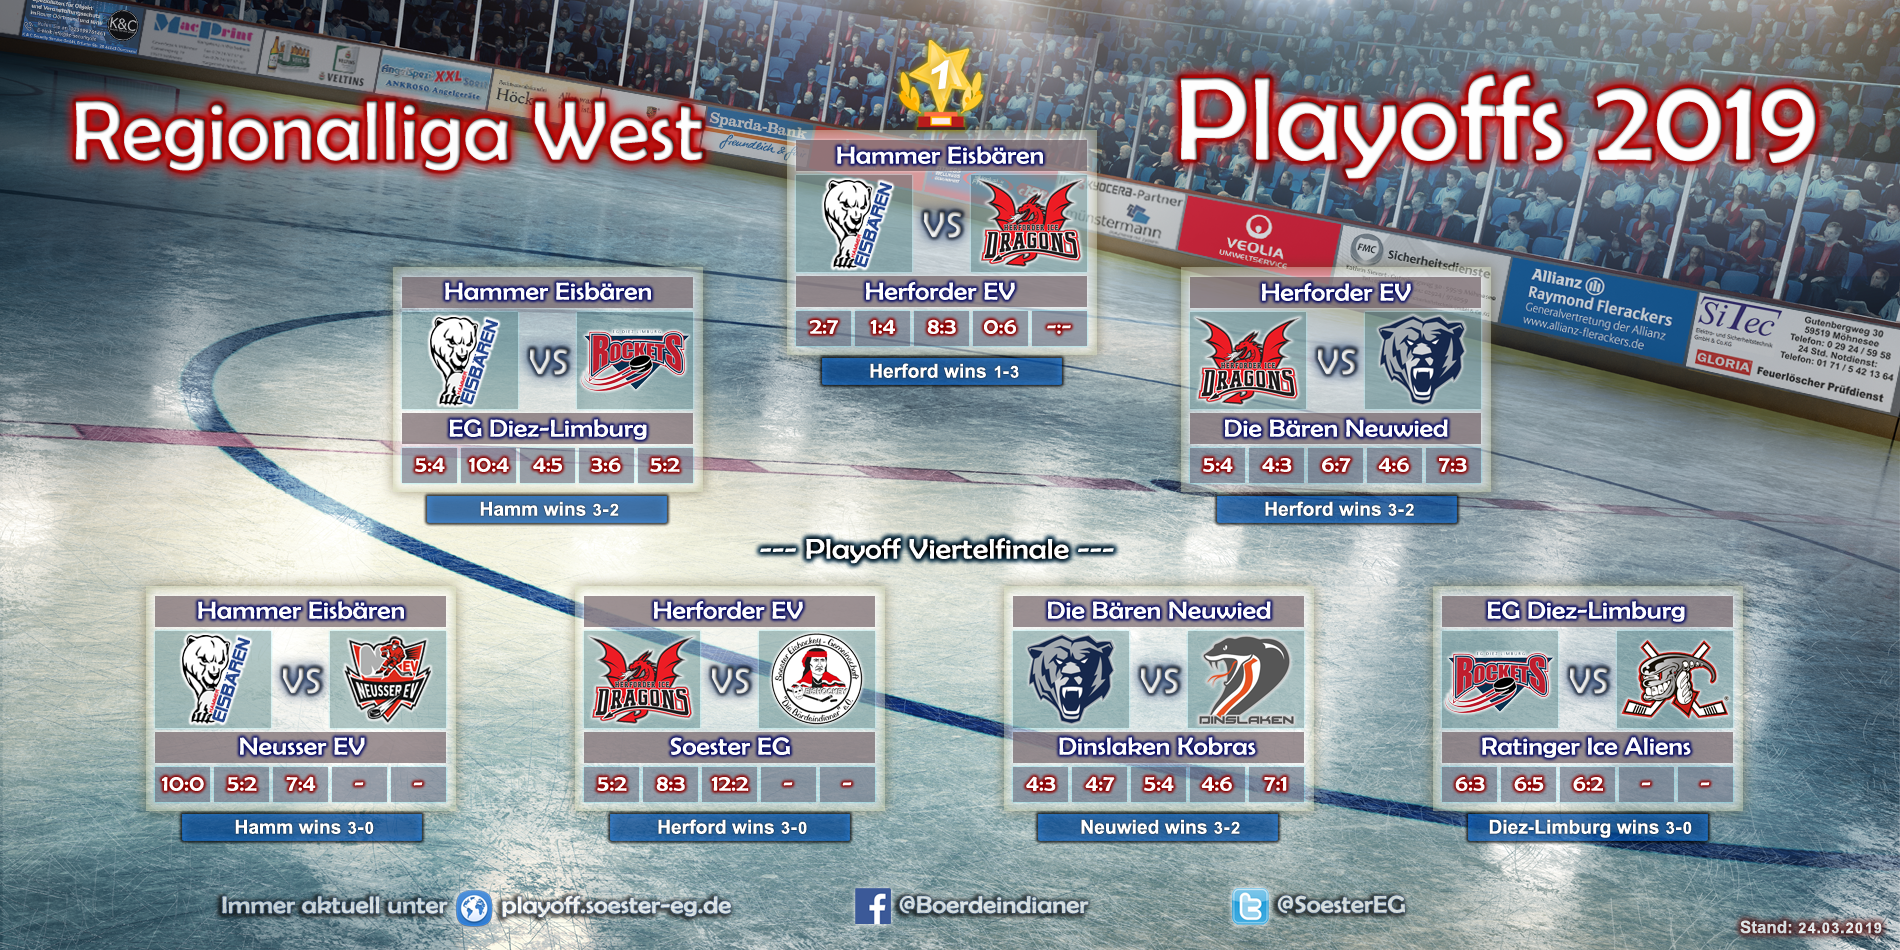 playoff_2019_rl_west.png